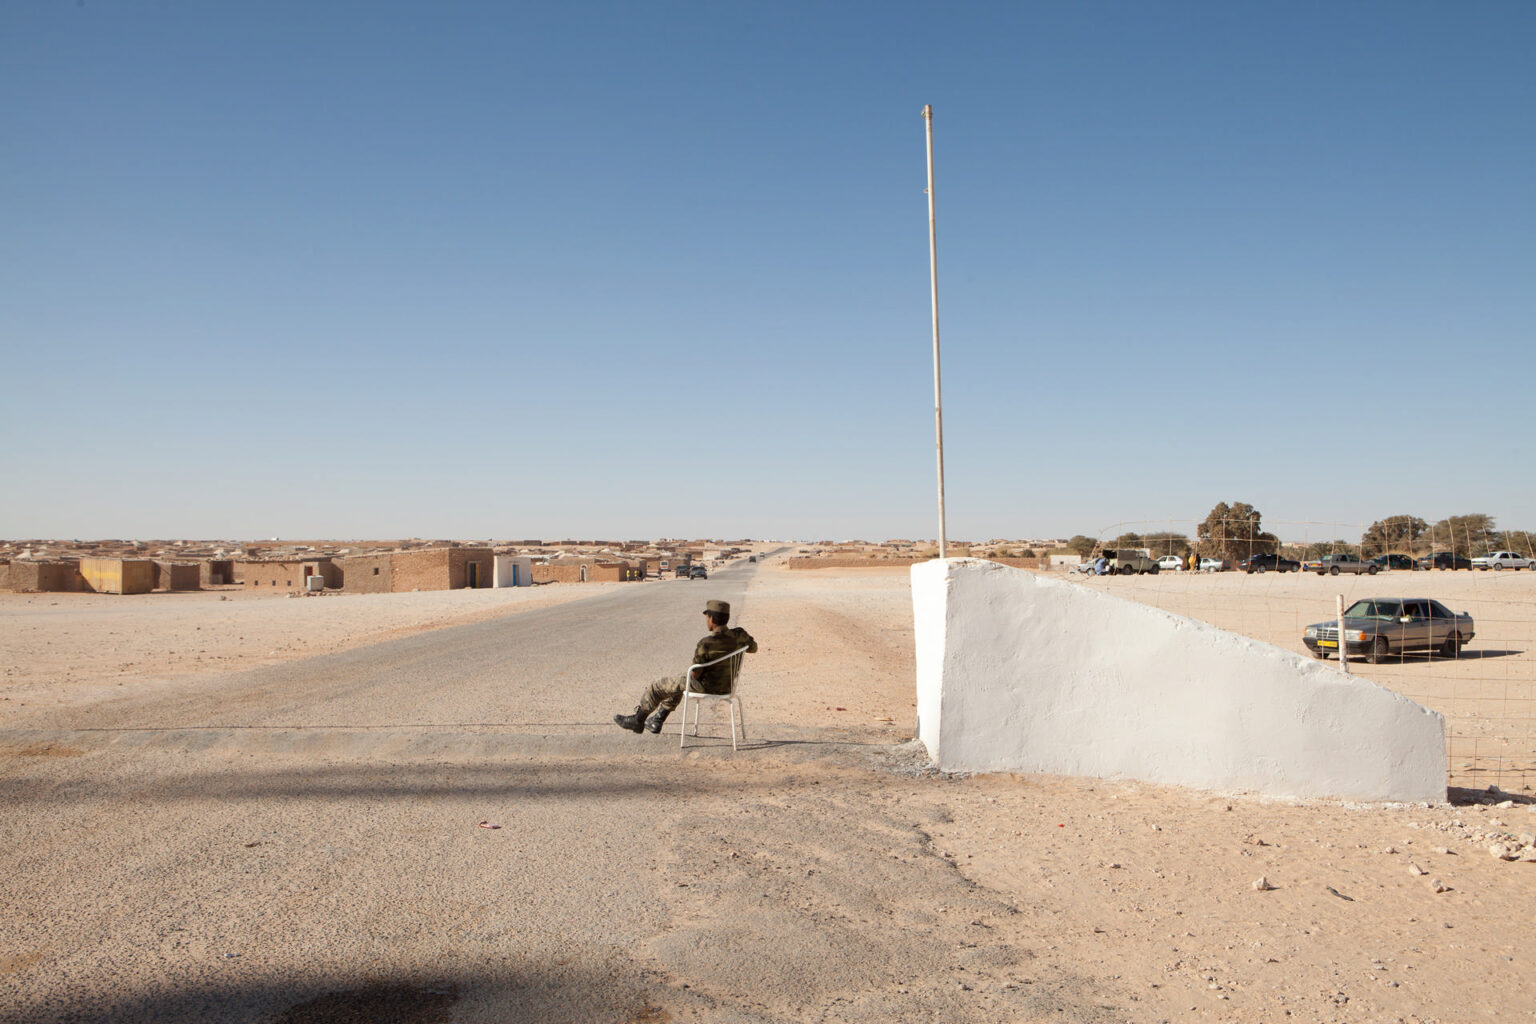 Polisario Guard, Laayoune Refugee Camp entrance, Algeria, 2015